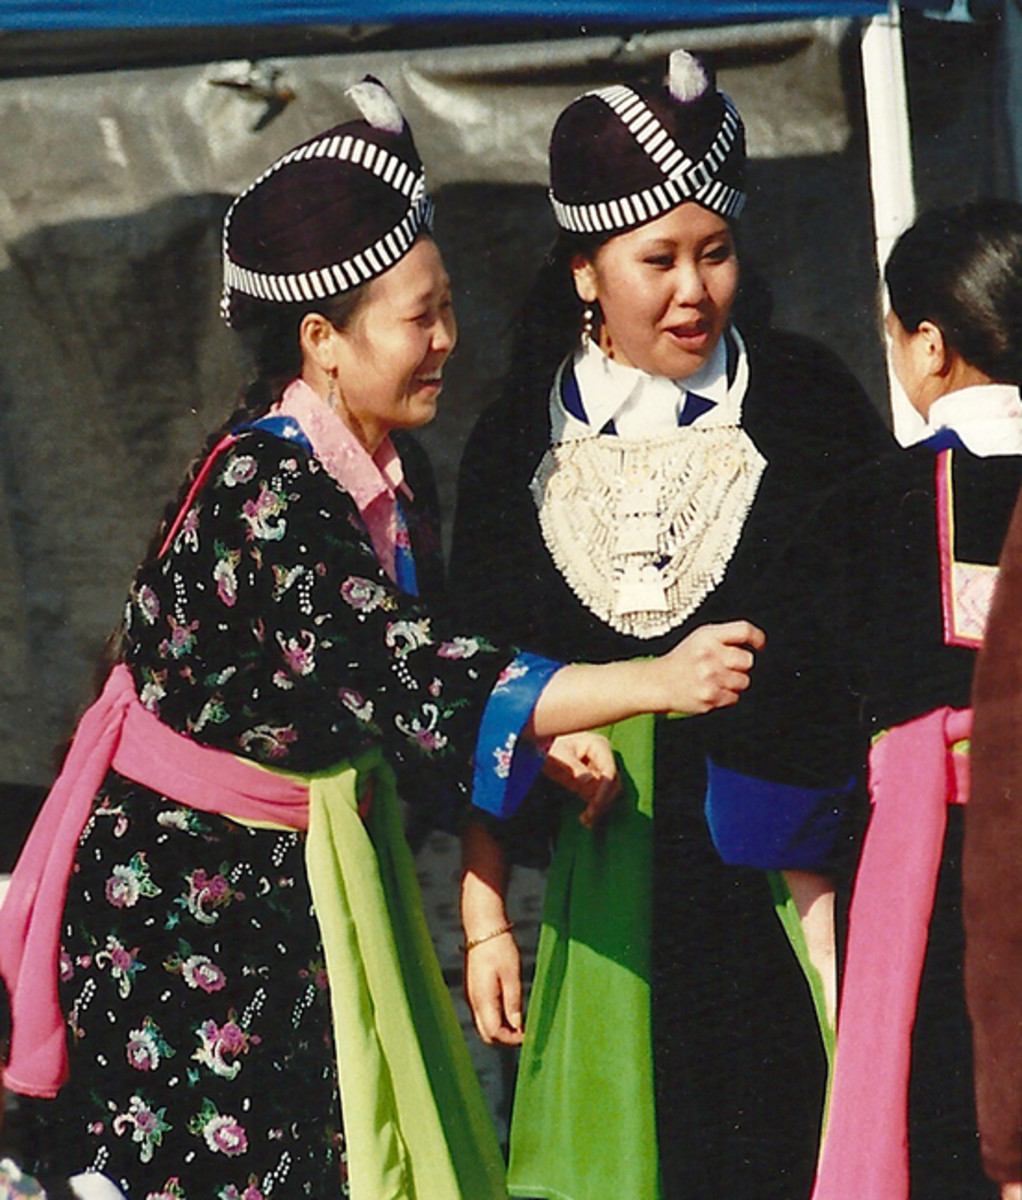 The distinctive dress of the Hmong women at the Chinese New Year Celebration.